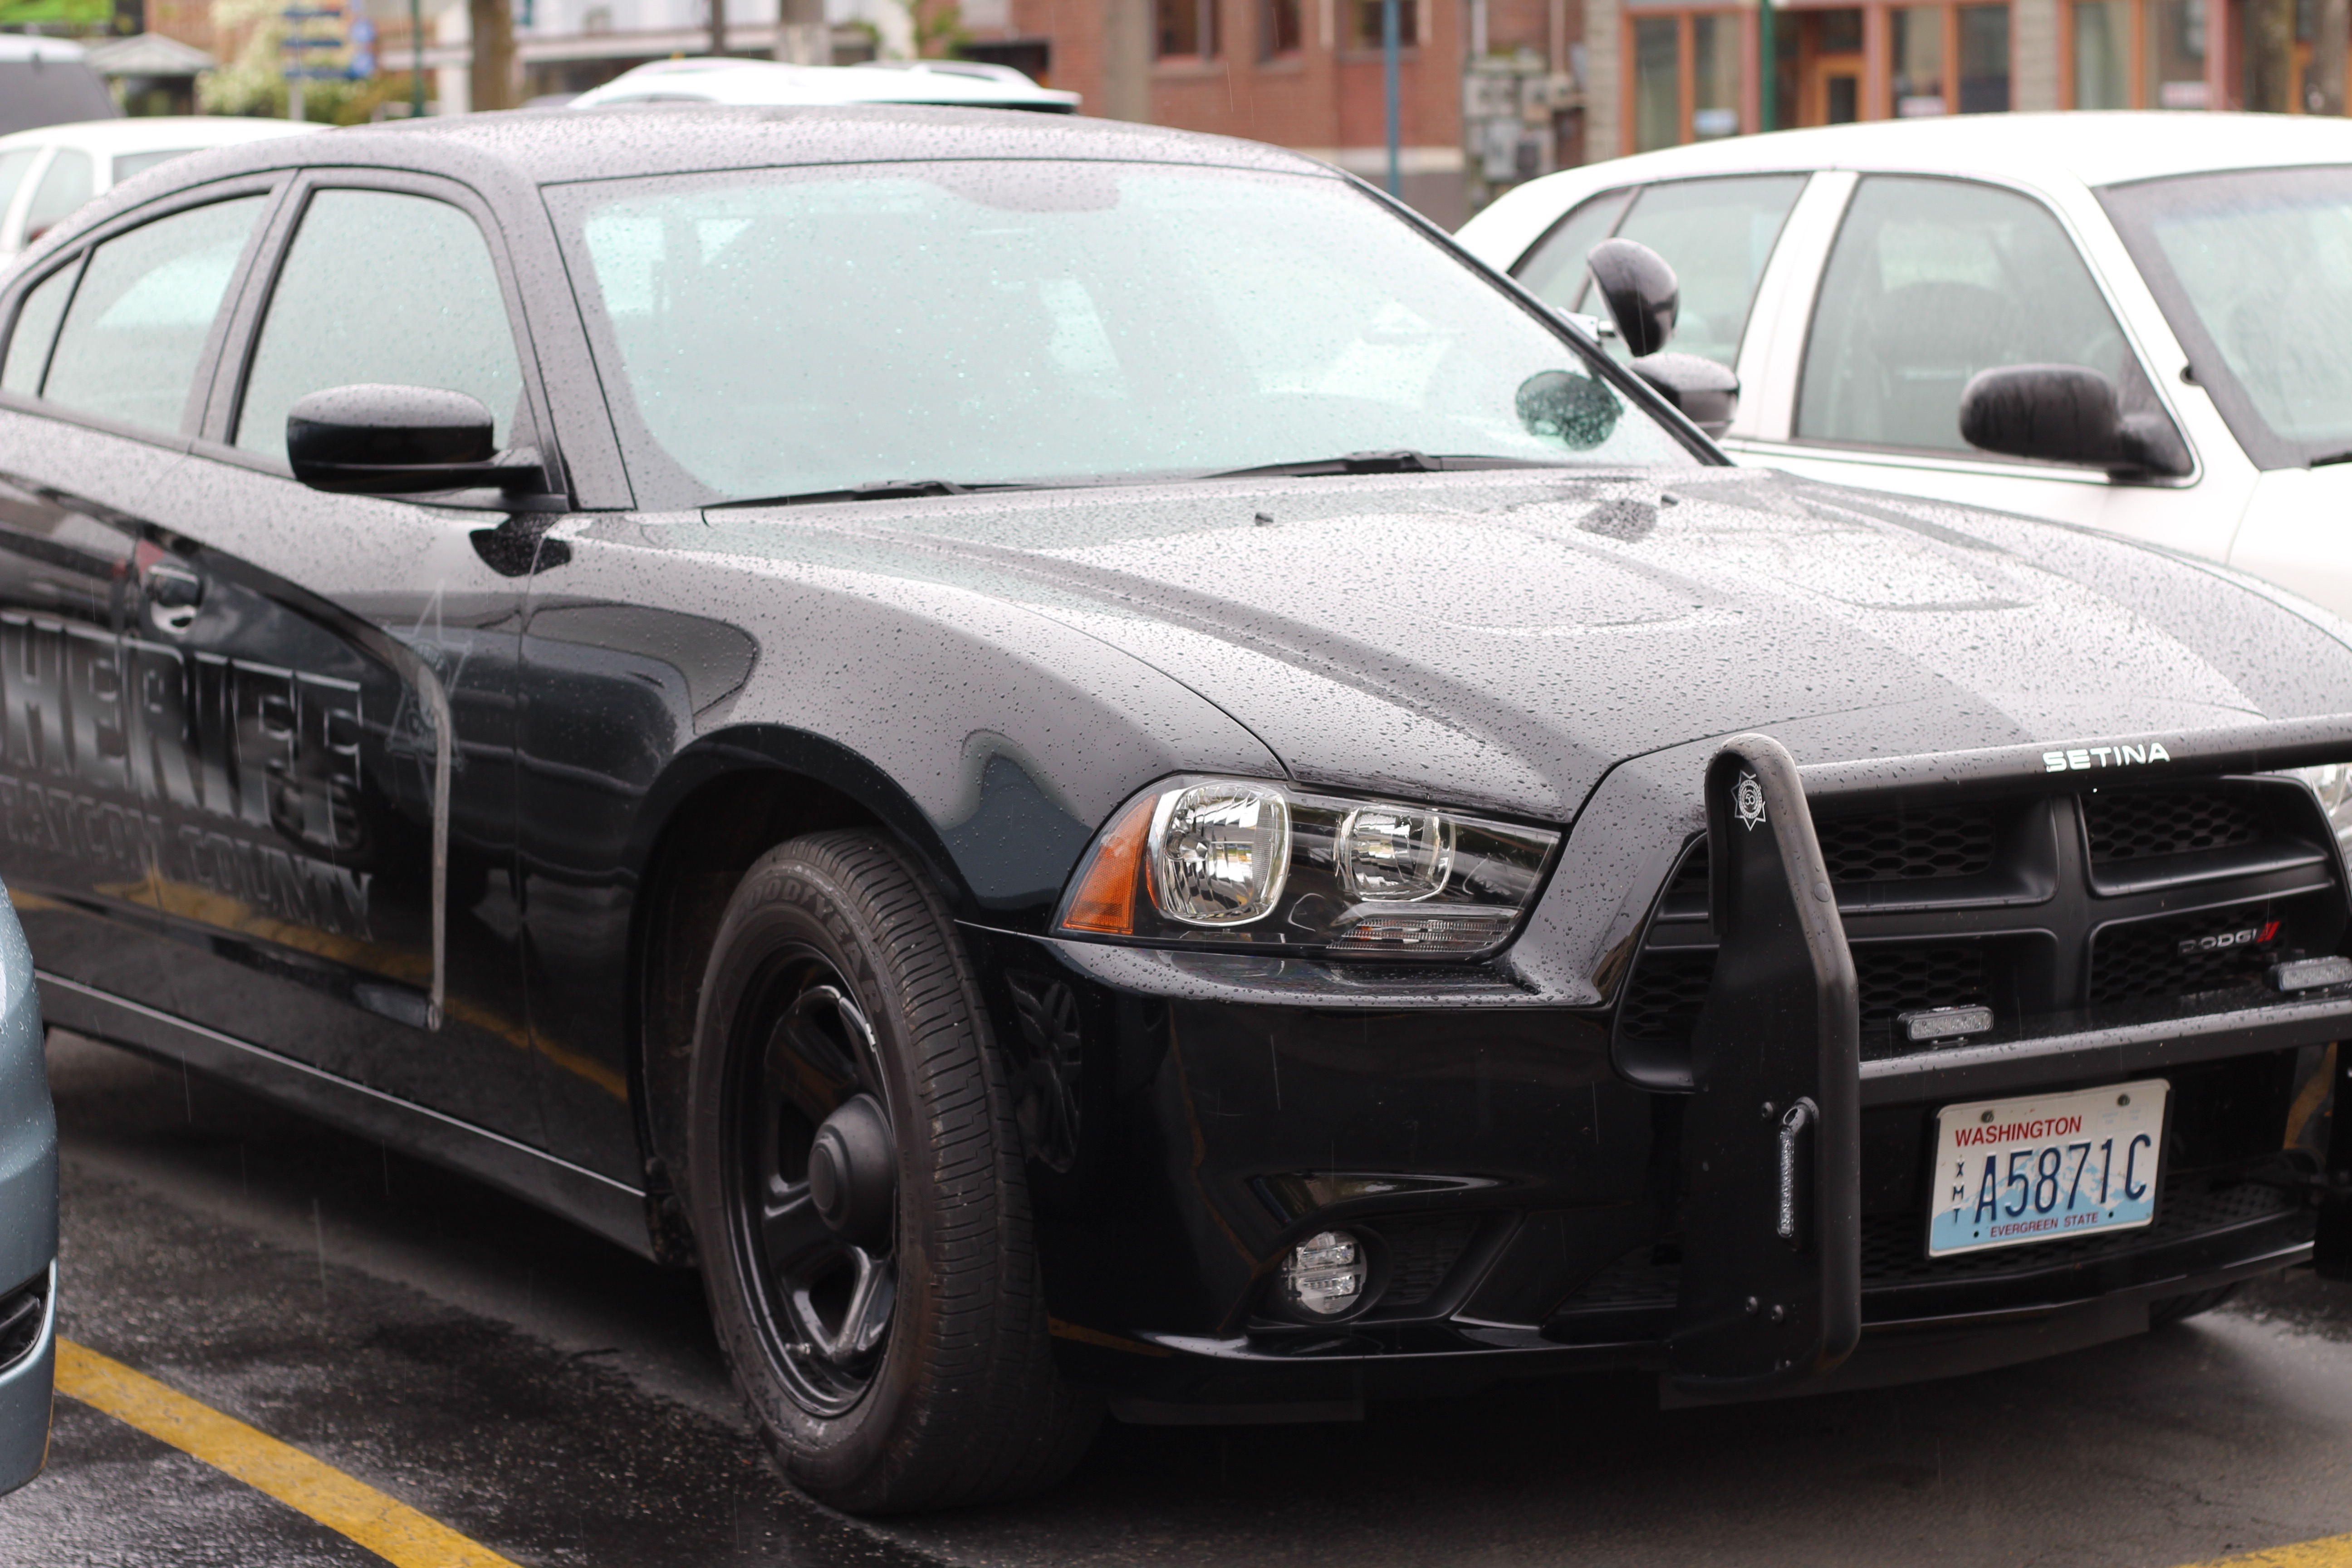 Whatcom County Sheriff's Office: Stealth Dodge Charger, Bellingham, Police car, Whatcom, Washington, HQ Photo